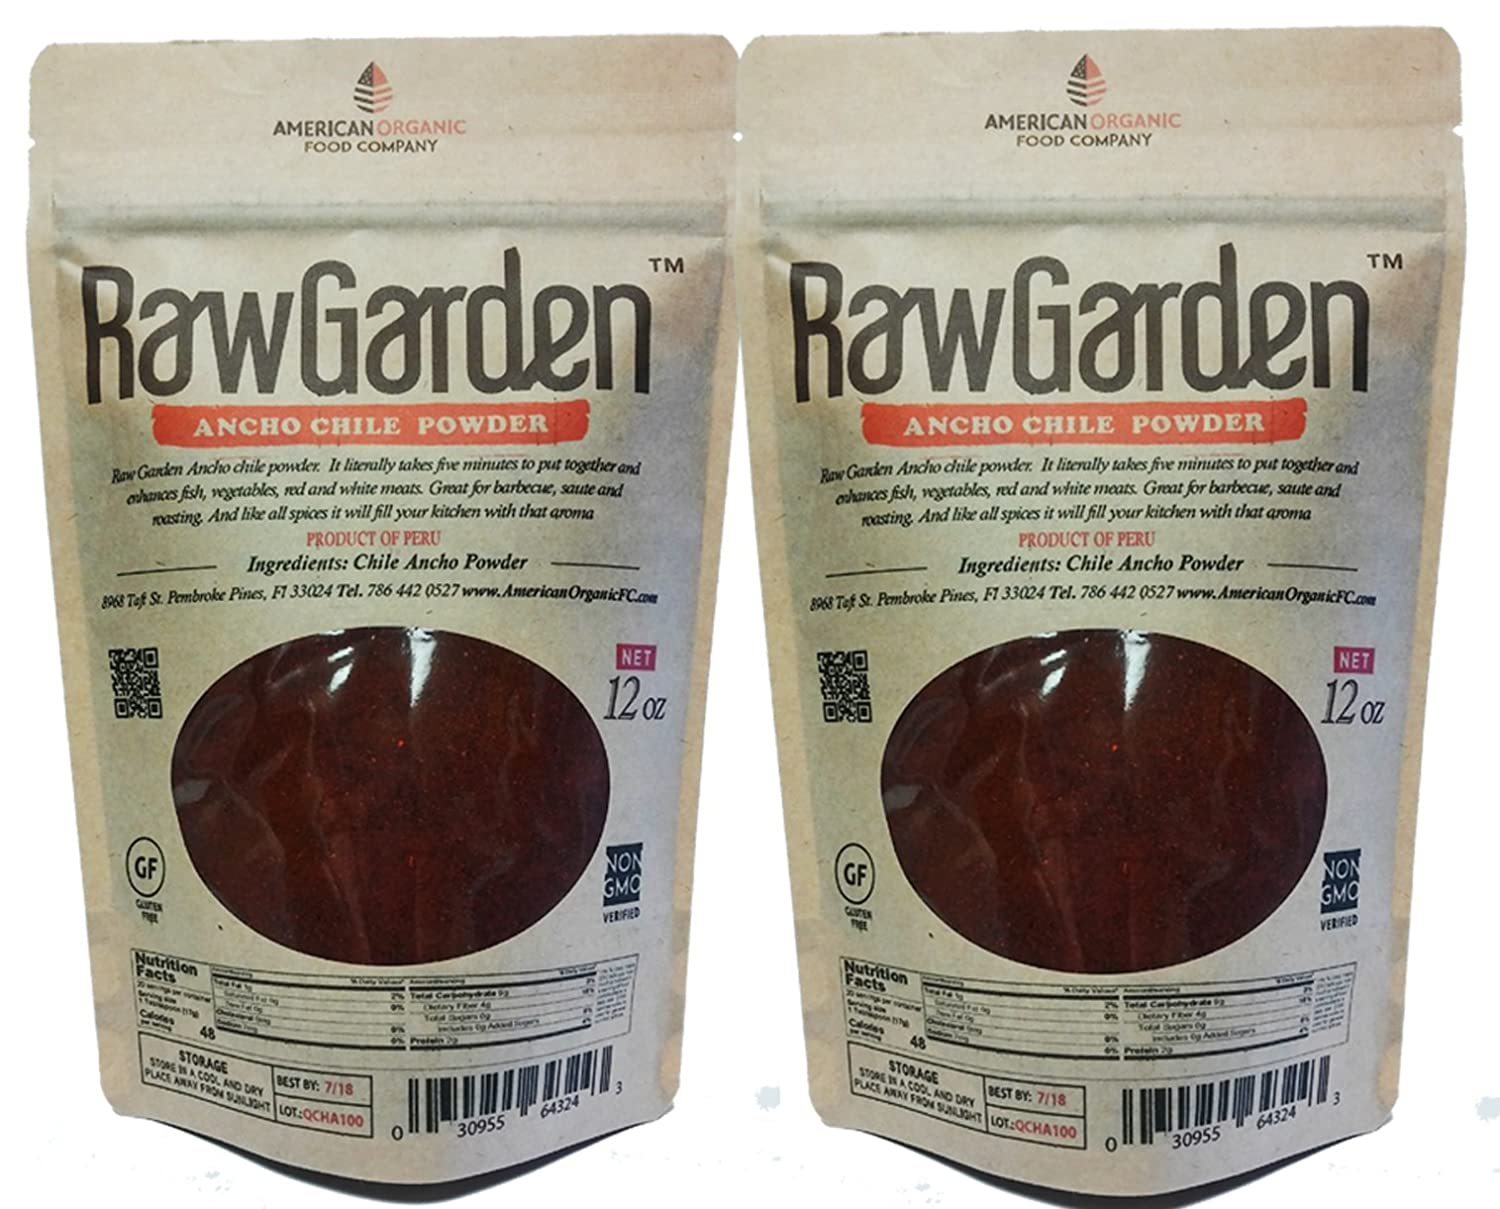 Amazon.com : Raw Garden Ancho Chile Powder (12 oz 2 Pack) : Grocery & Gourmet Food